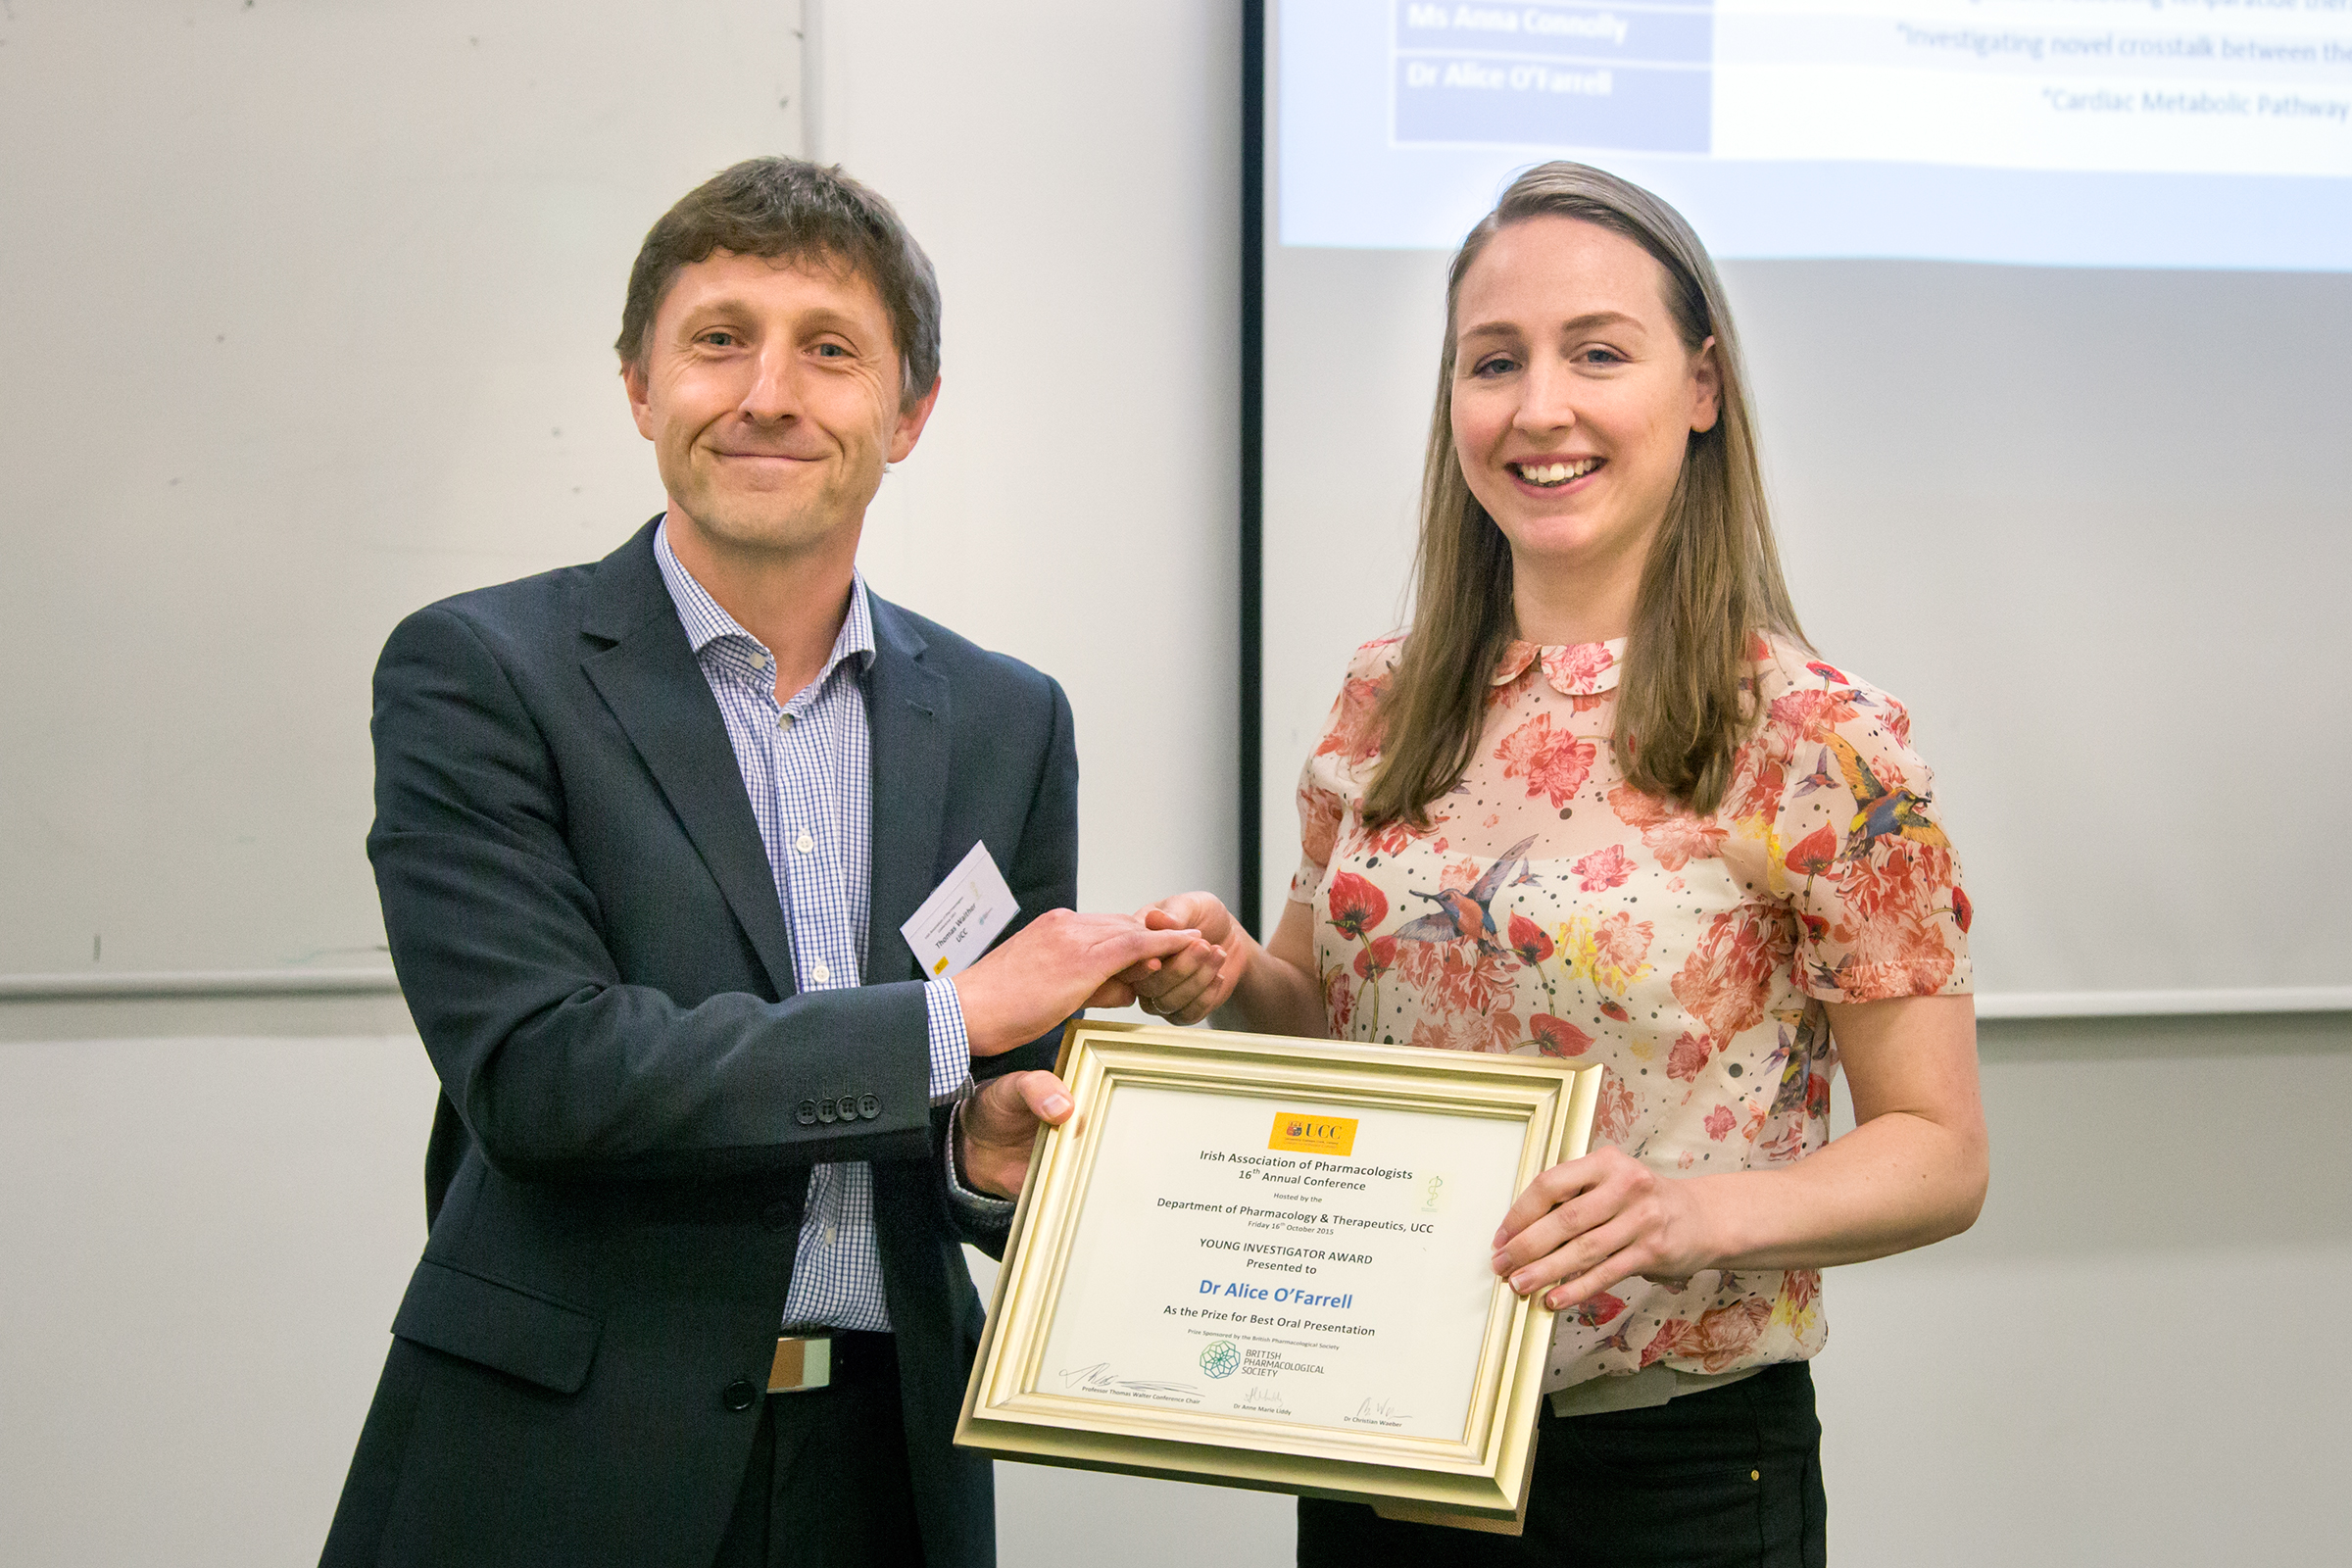 Irish Association of Pharmacologists Annual Meeting - Oral presentation prize (2)